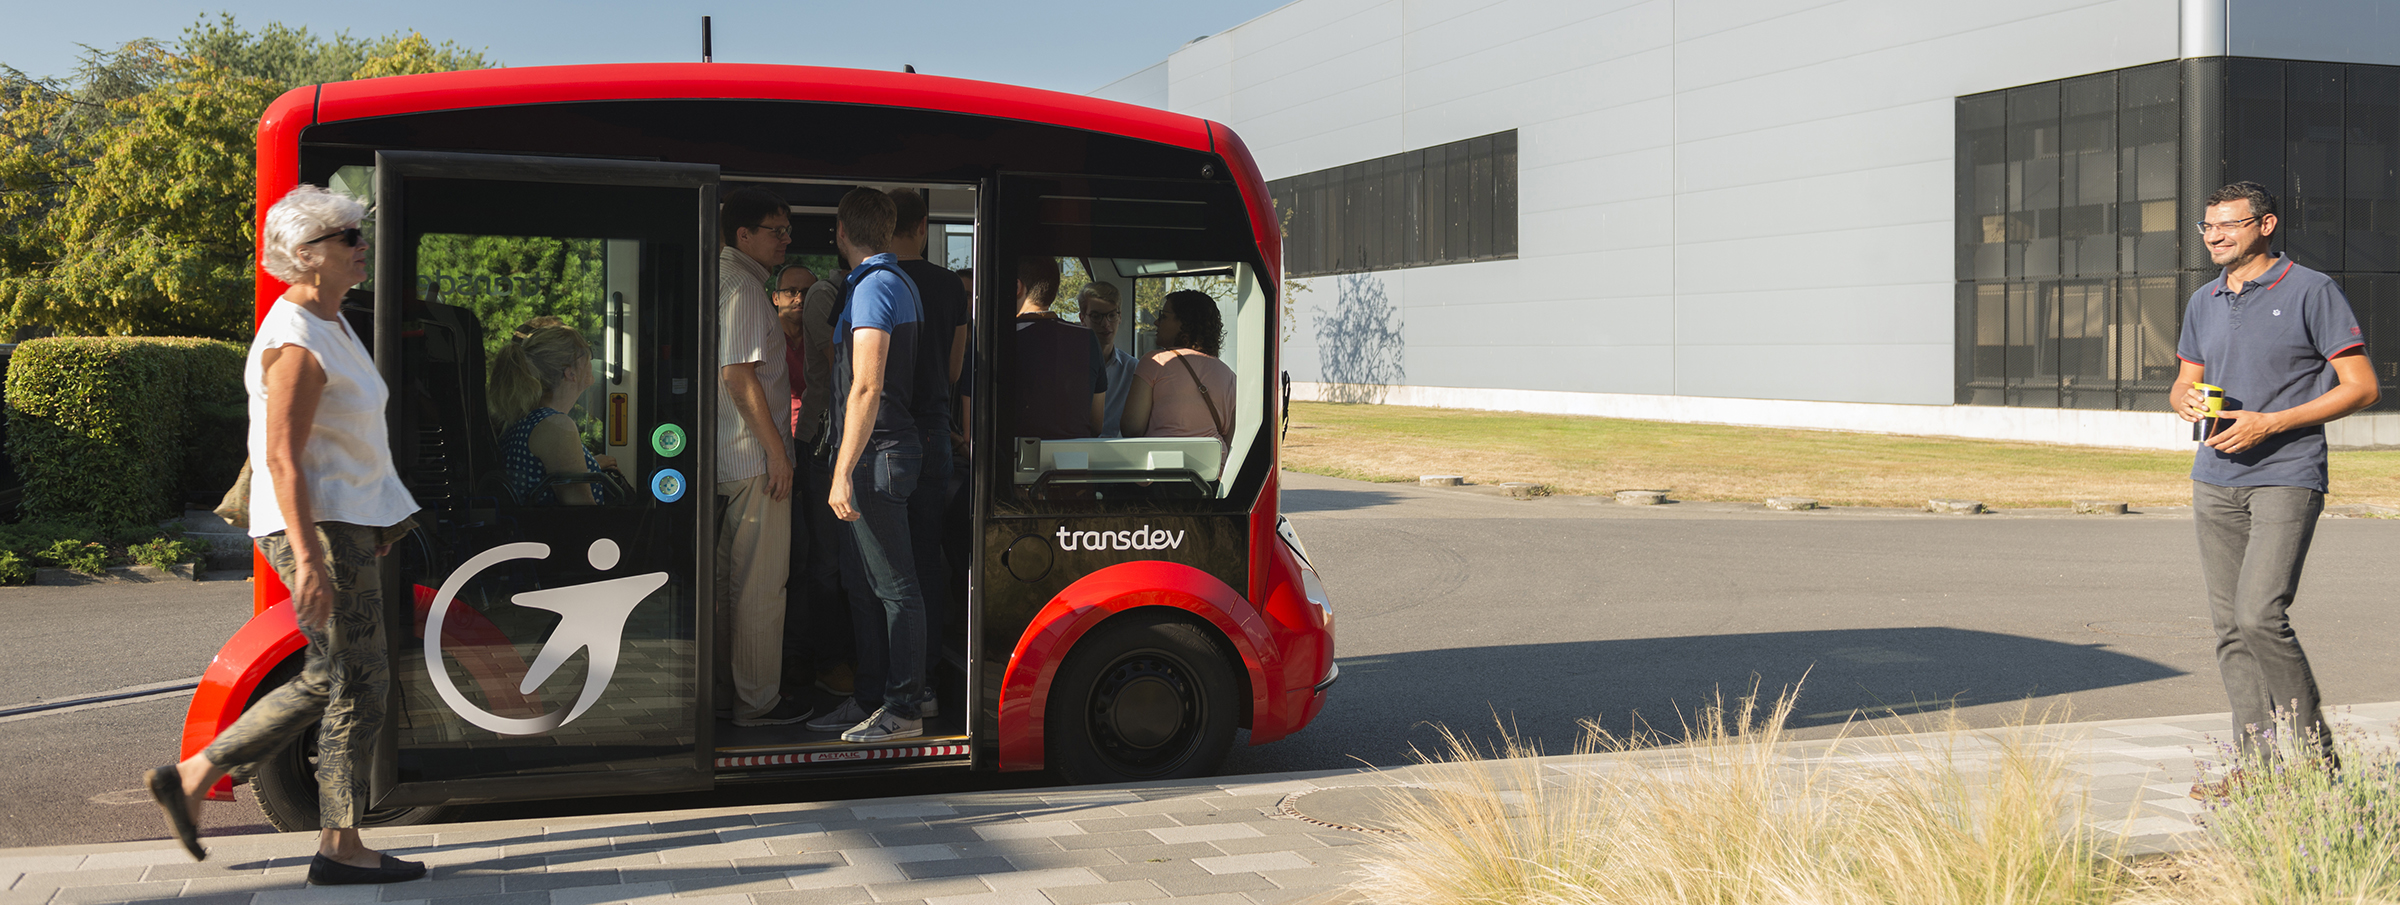 The i-Cristal autonomous electric shuttle, developed thanks to the partnership between Lohr and Transdev.